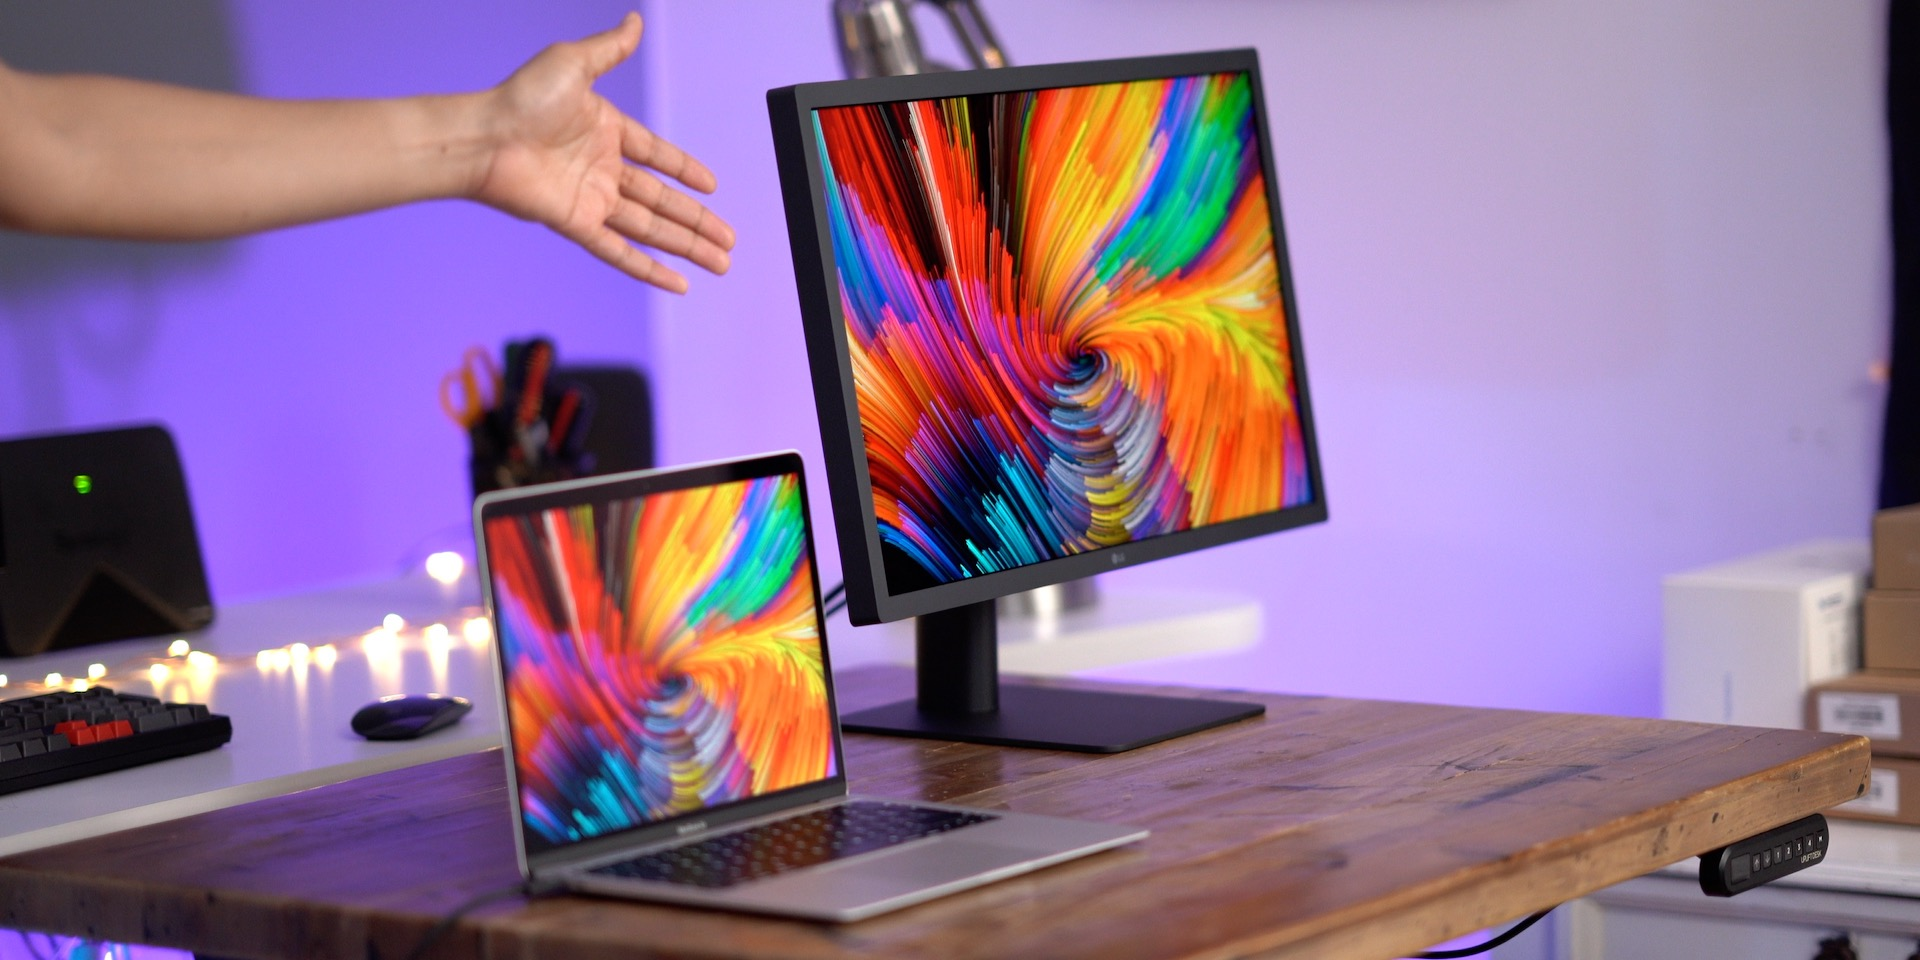 Review: LG UltraFine 4K Display (2019) - two Thunderbolt 3